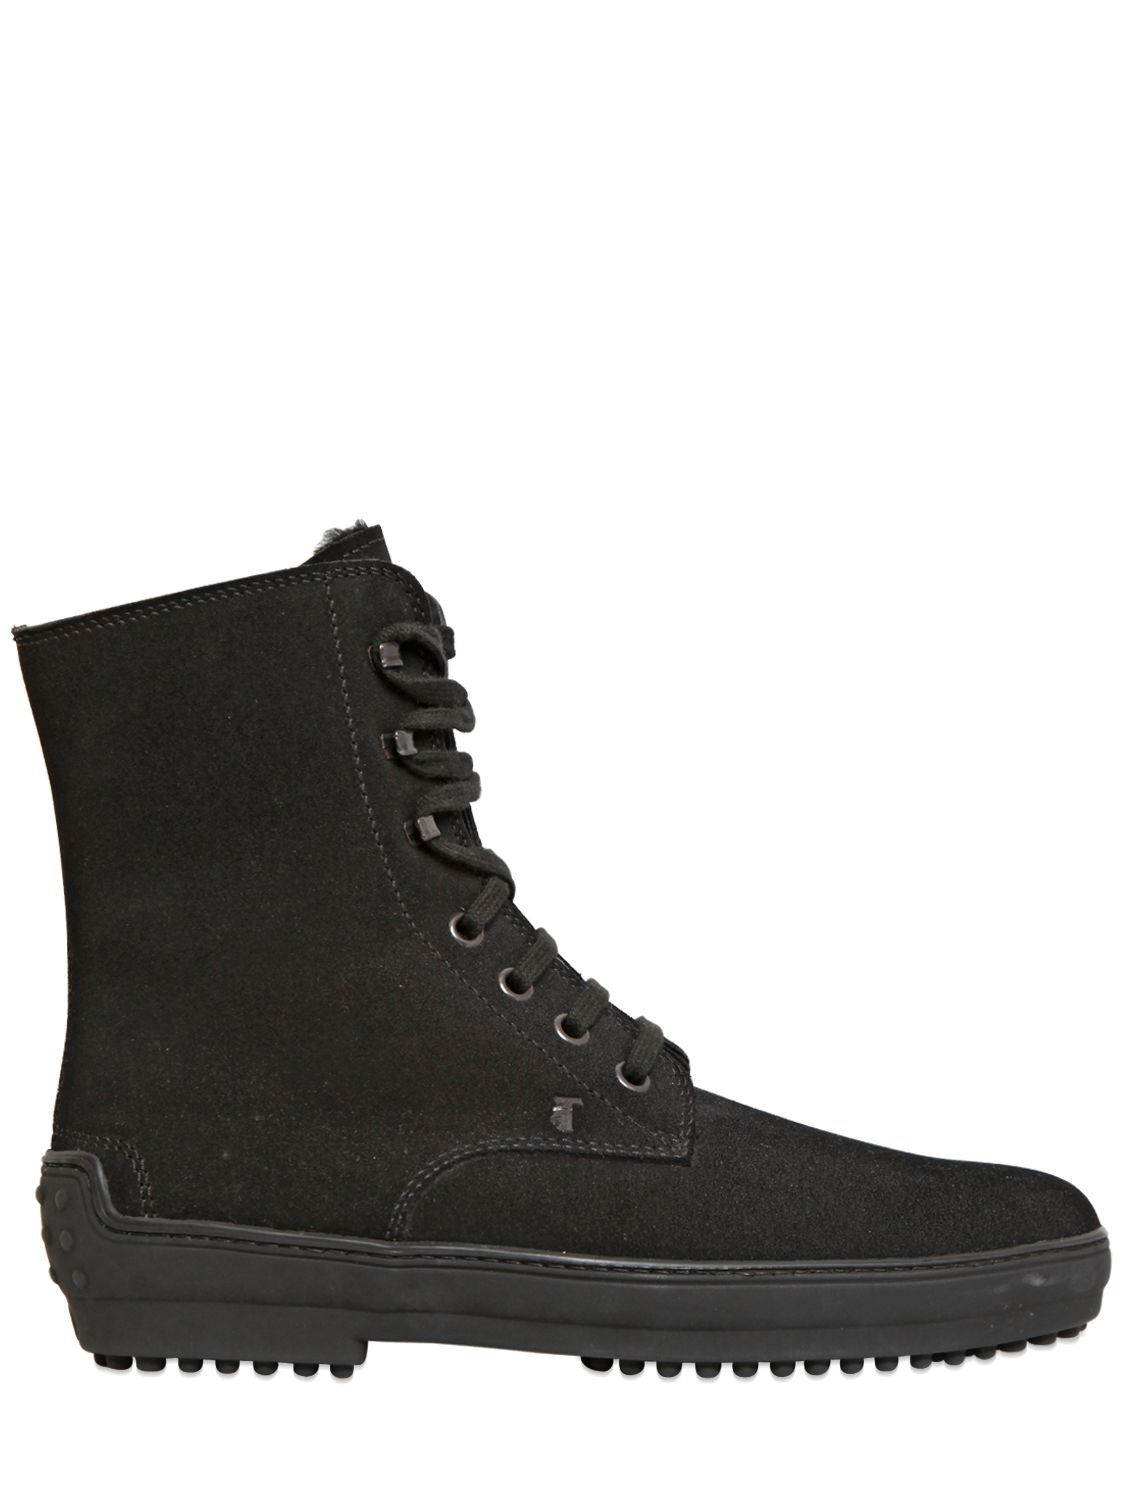 fc08b787ca9 TOD'S - 20MM WINTER GOMMINO SUEDE BOOTS - LUISAVIAROMA | Shoes ...